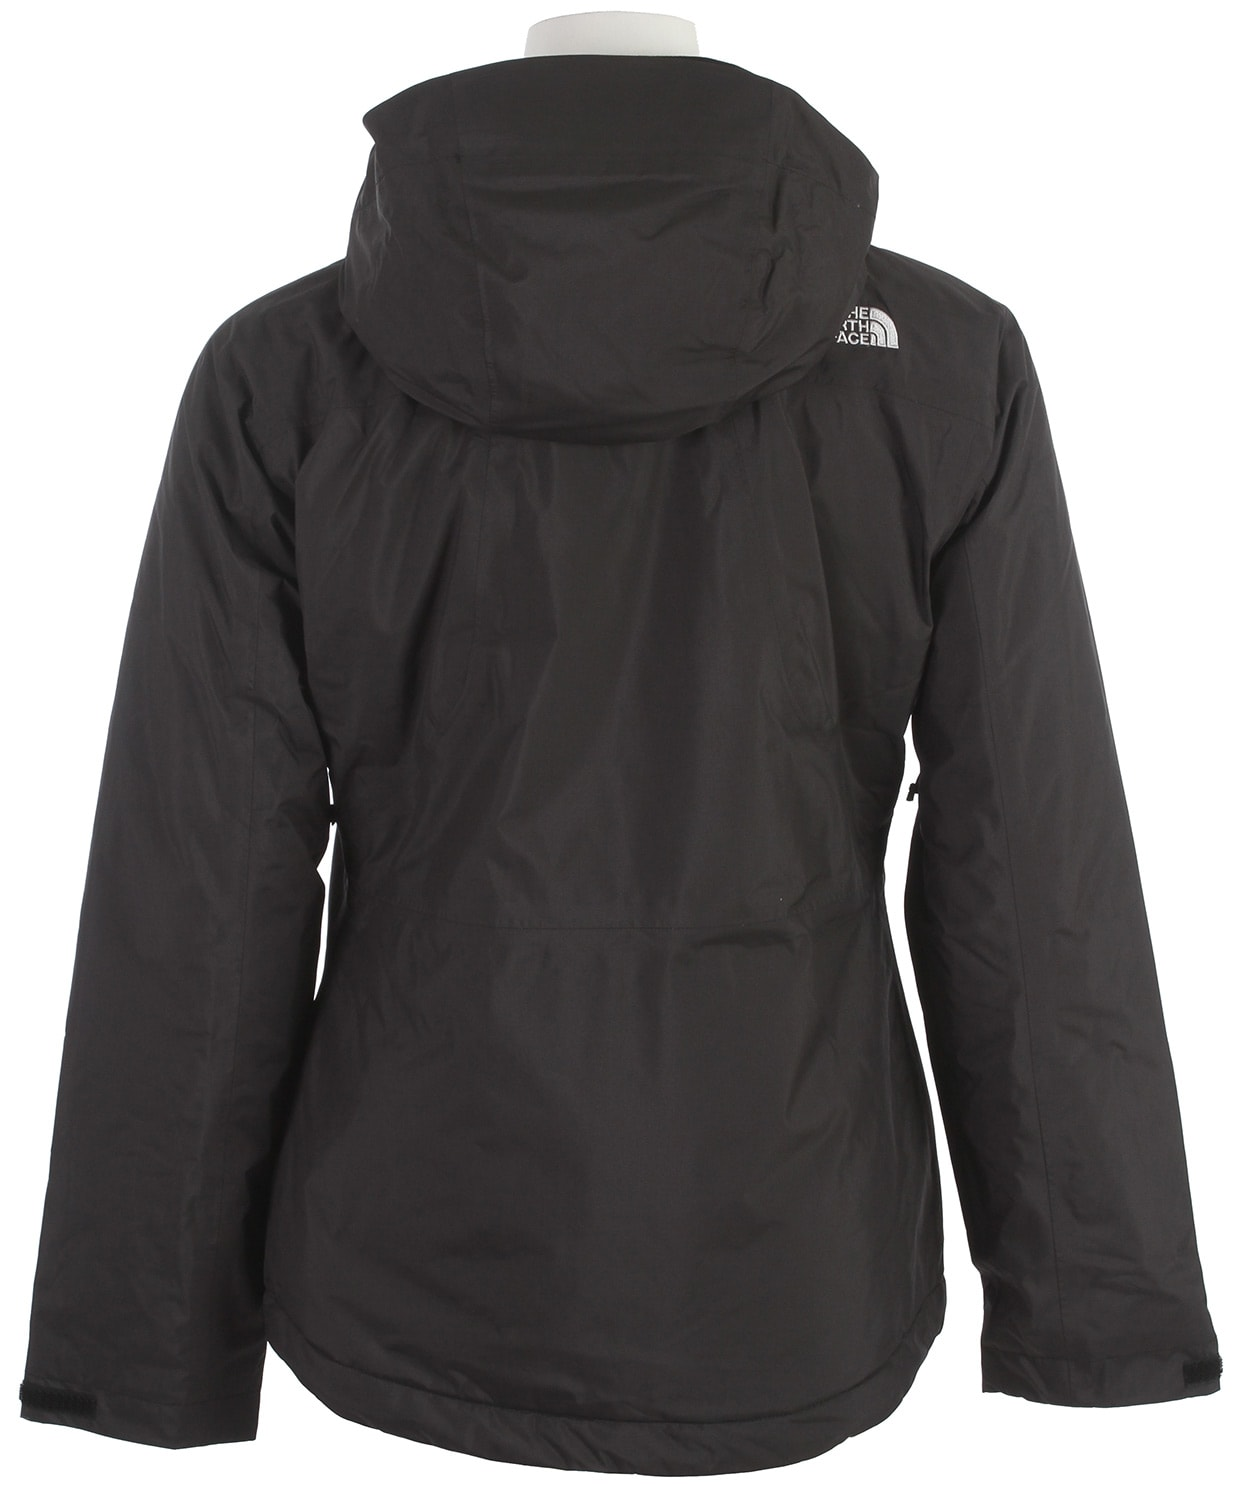 North Face 3 In 1 Womens Jacket